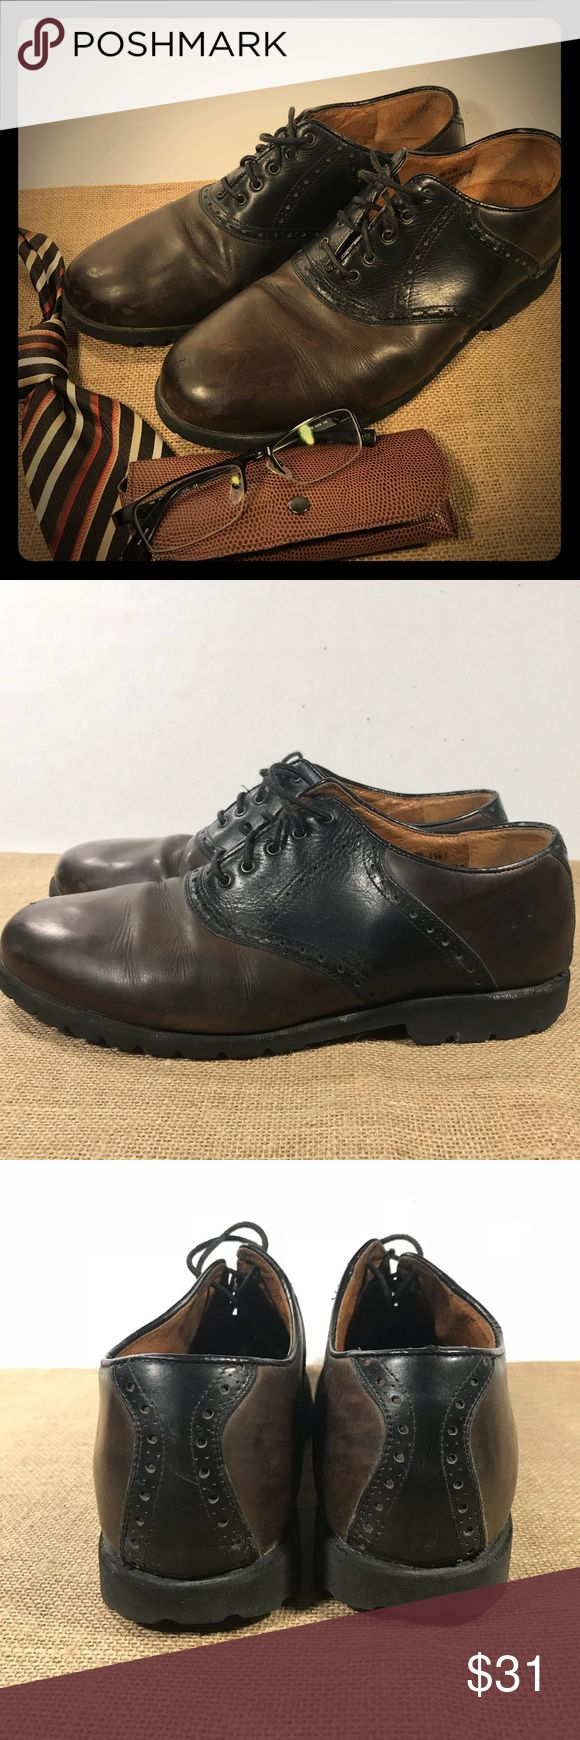 """Mens 10 Two Tone Oxfords By """"Johnston and Murphy"""" US Mens Size 10 Two-Tone Black and Brown Lace-Up Oxfords These are in good condition, but show some signs of wear (light haze/scuffing) Johnston and Murphy  •Accessories Not Included in Sale• Johnston & Murphy Shoes Oxfords & Derbys"""